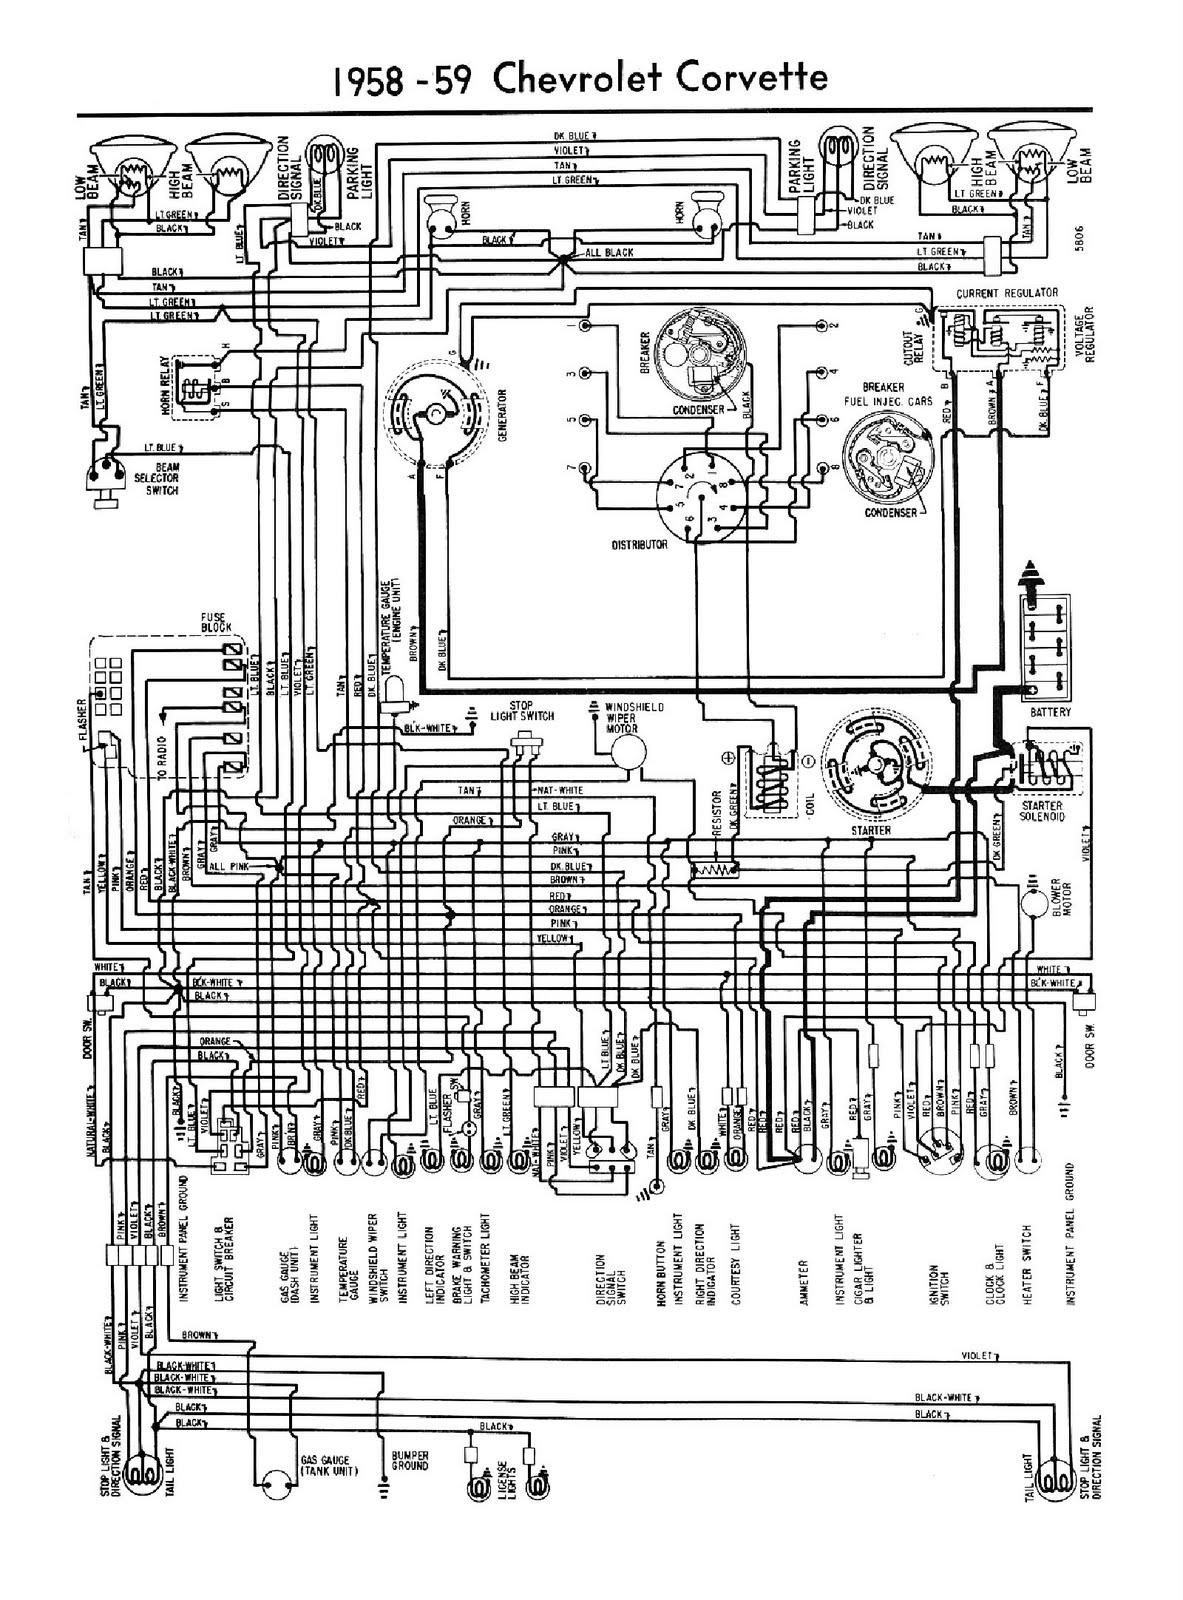 DIAGRAM 1968 Corvette Ignition Switch Wiring Diagram ...